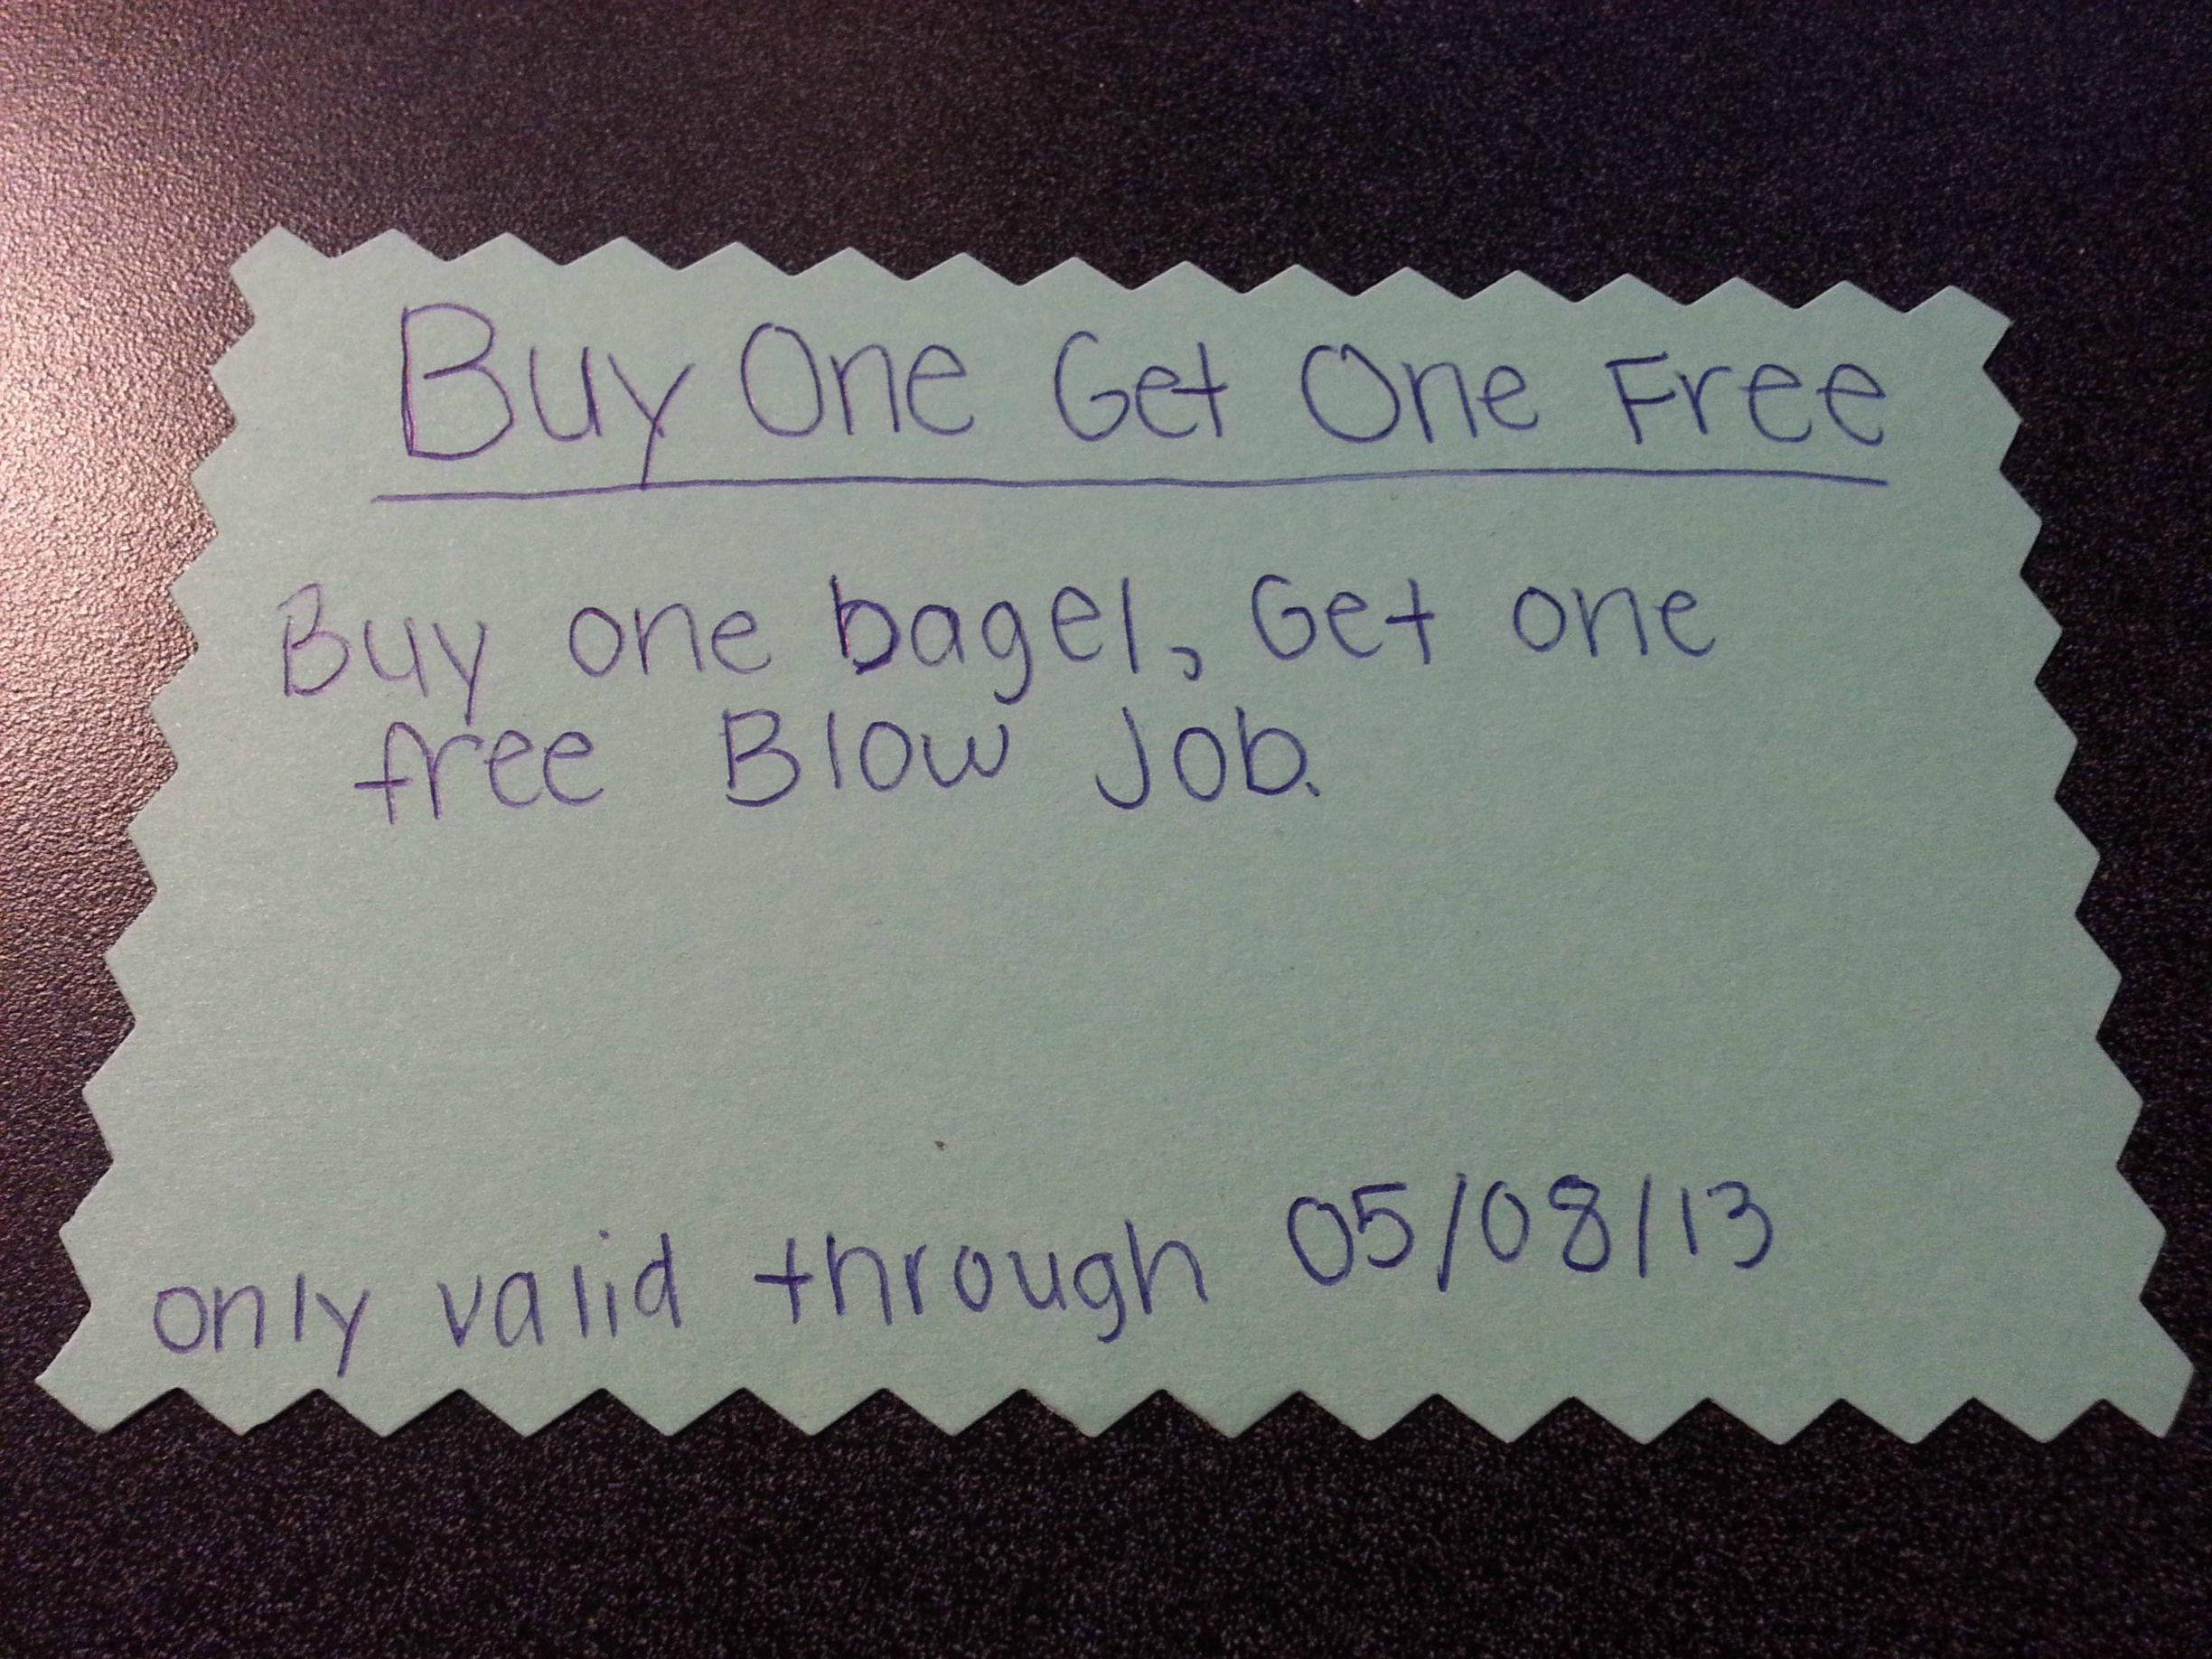 A woman forgot her wallet, so she gave her boyfriend who works in the same building the ultimate coupon.